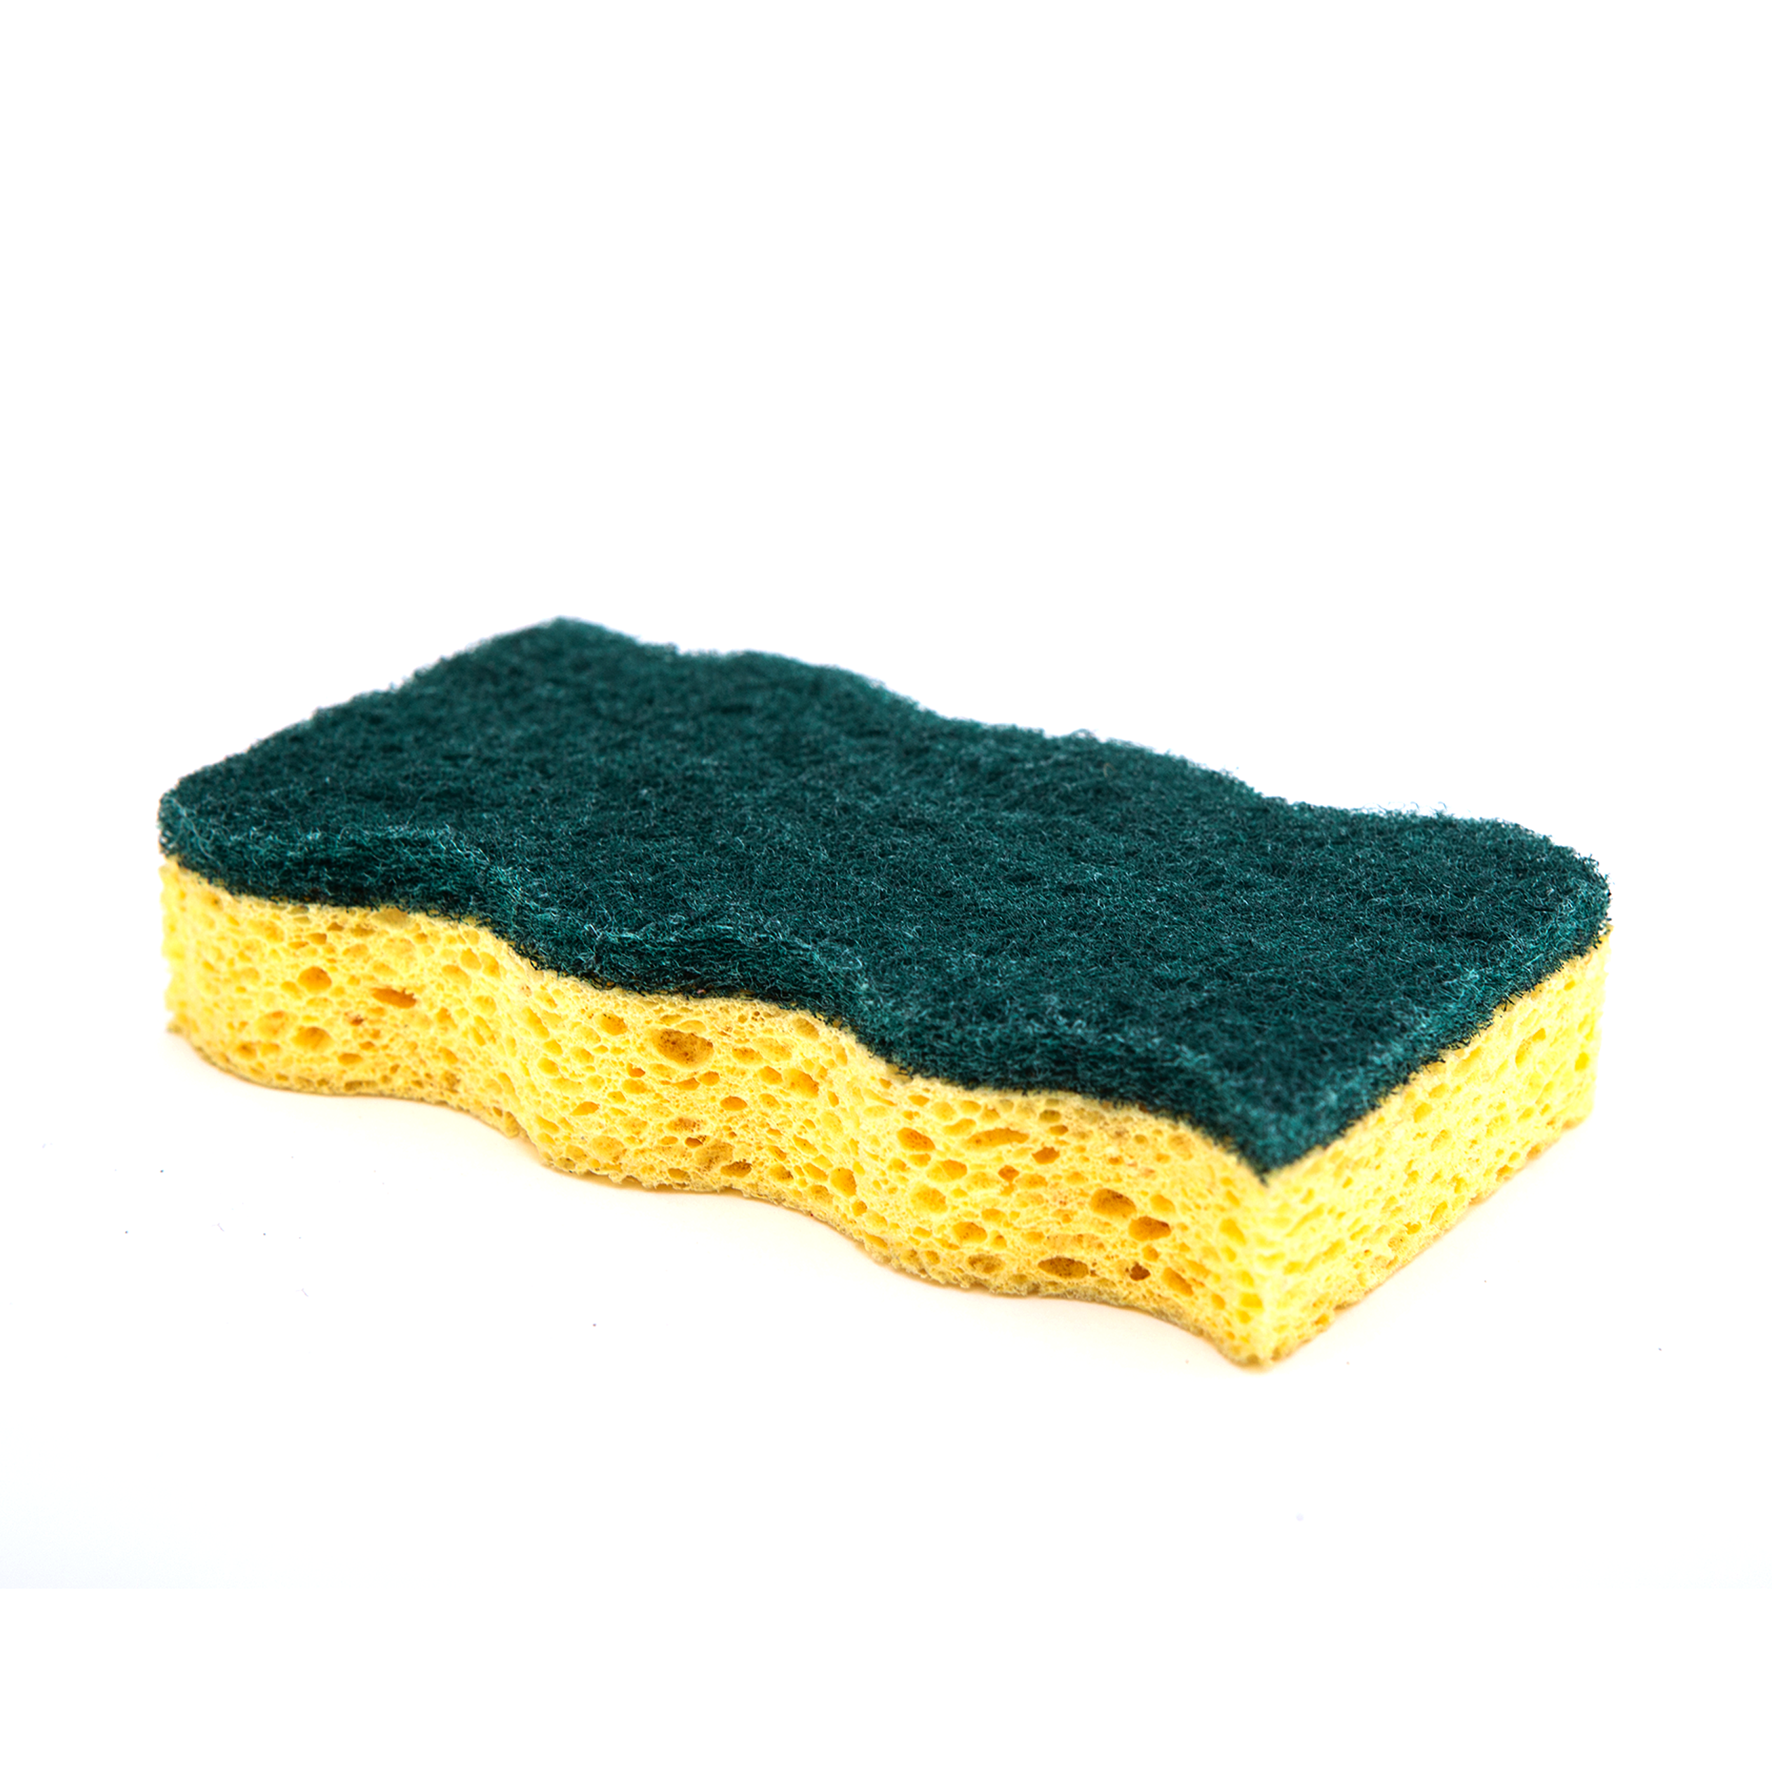 DH-A5-3 High quality cellulose sponge kitchen cleaning sponge with scouring pad